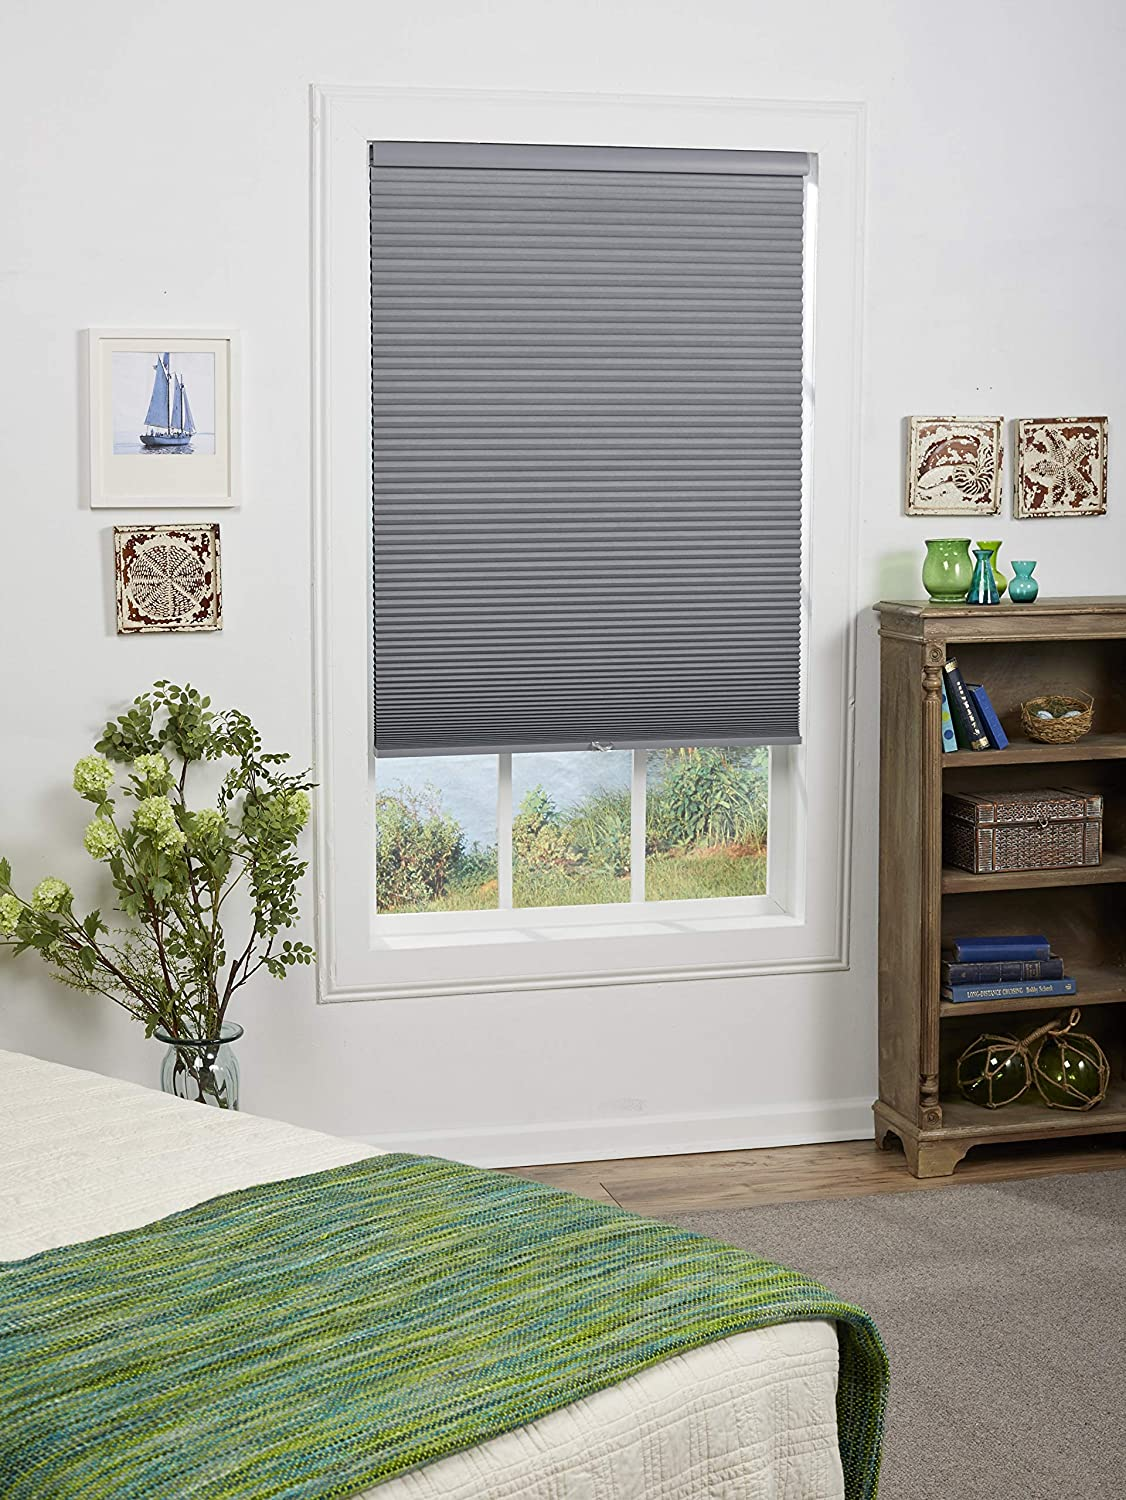 DEZ Cordless Furnishing Solar Blind